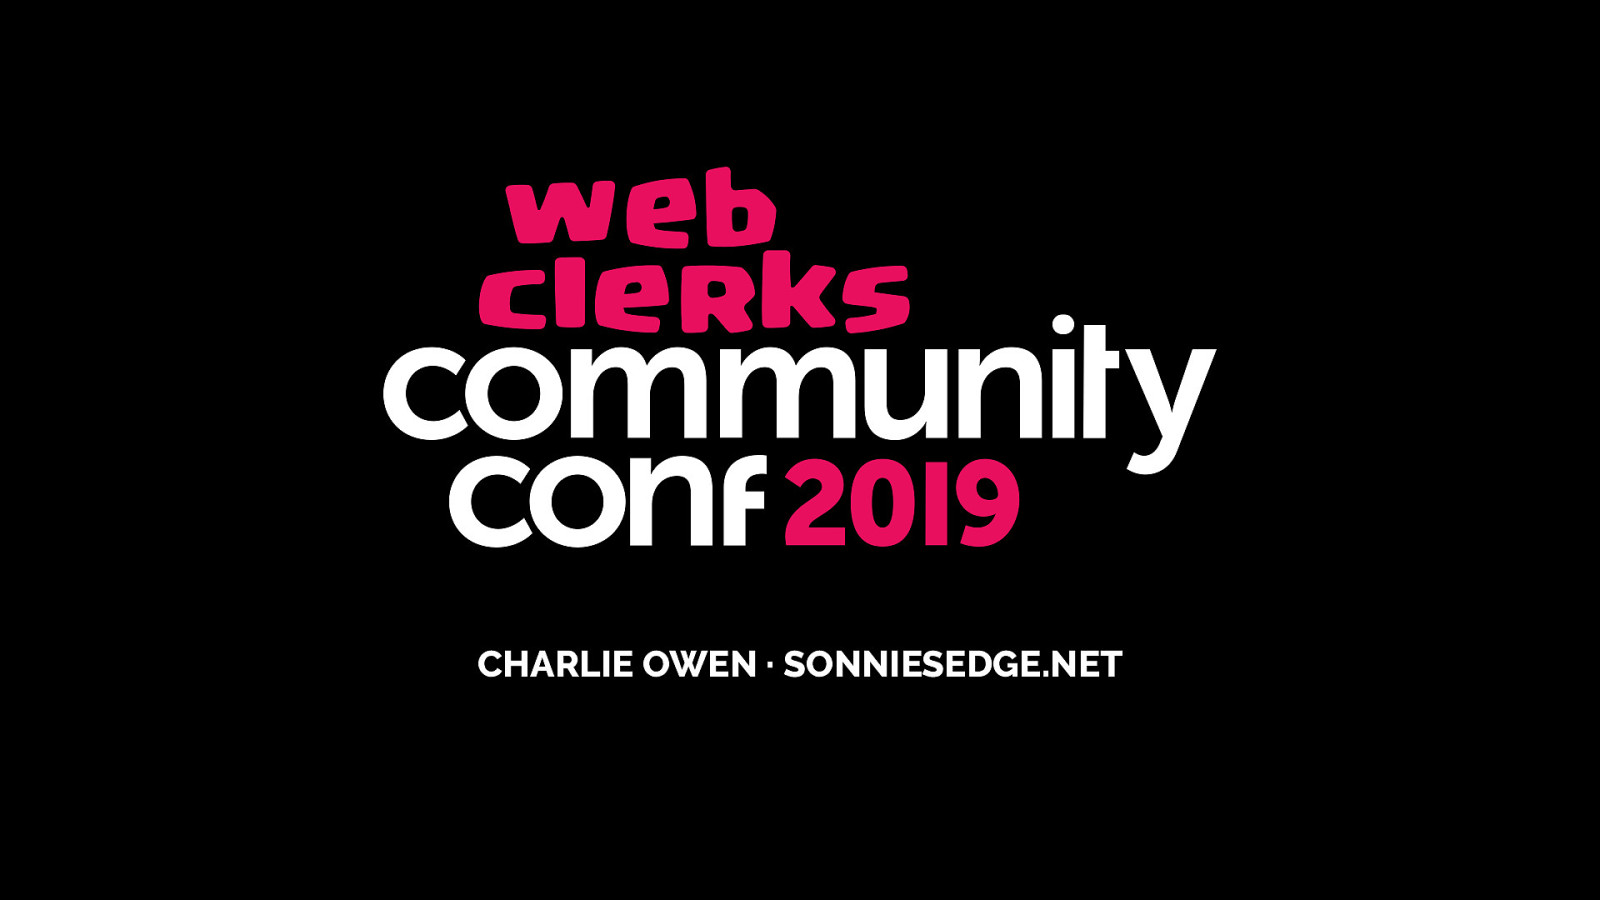 Web Clerks Communiy Conf 2019